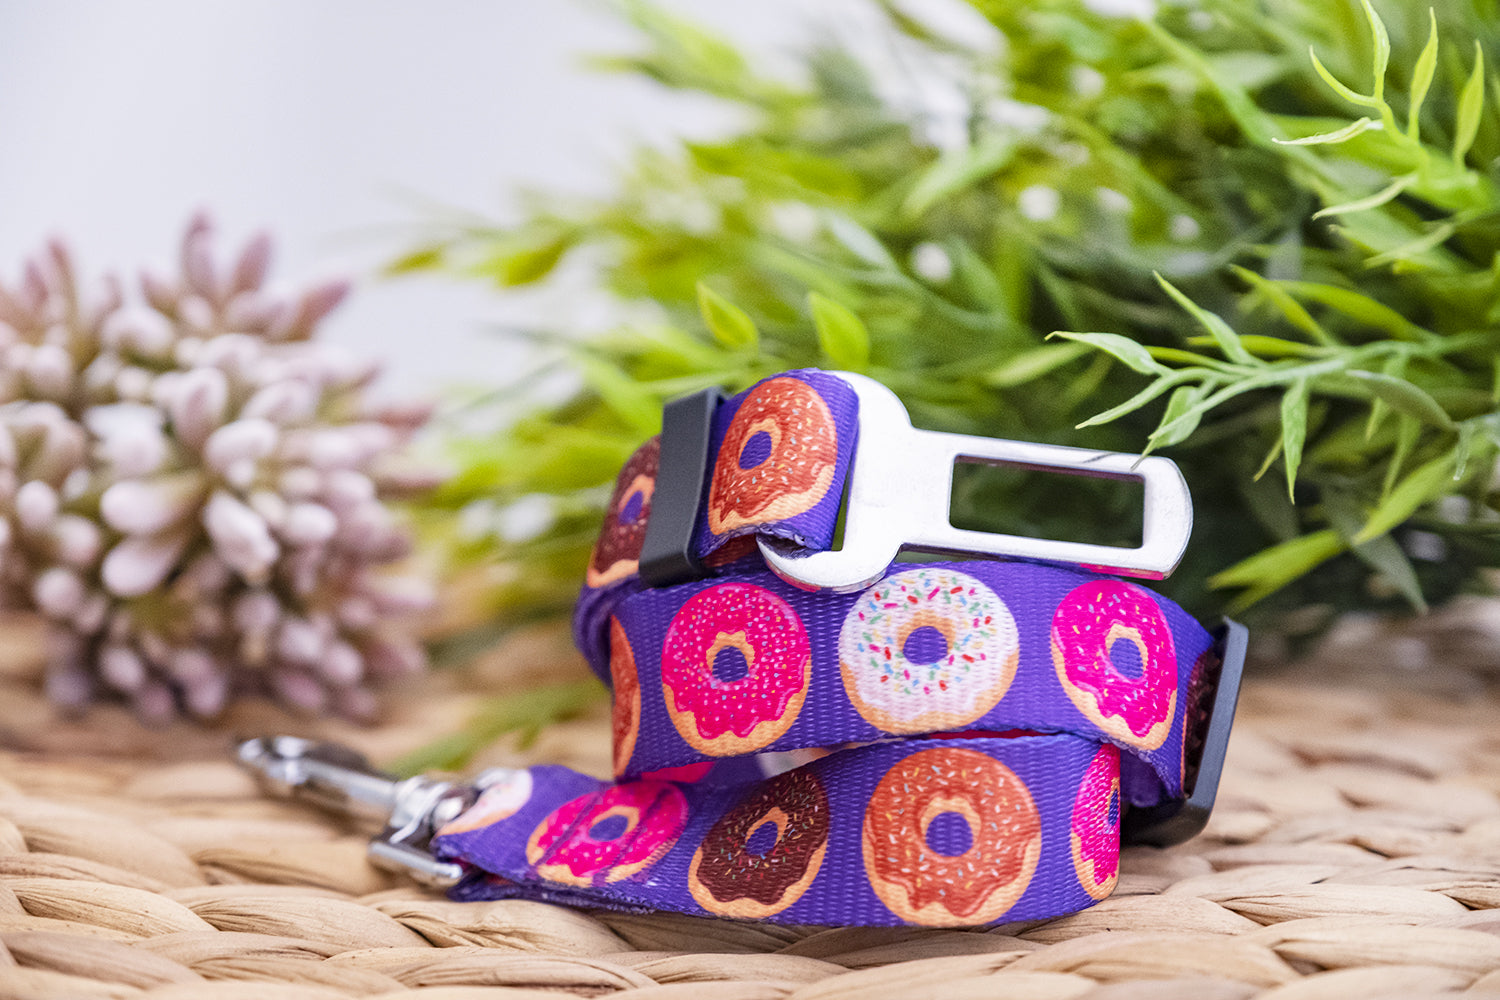 Dog Car Seatbelt / Dog Car Restraint Tether - Purple Donuts (Handmade to order)-Dizzy Dog Collars